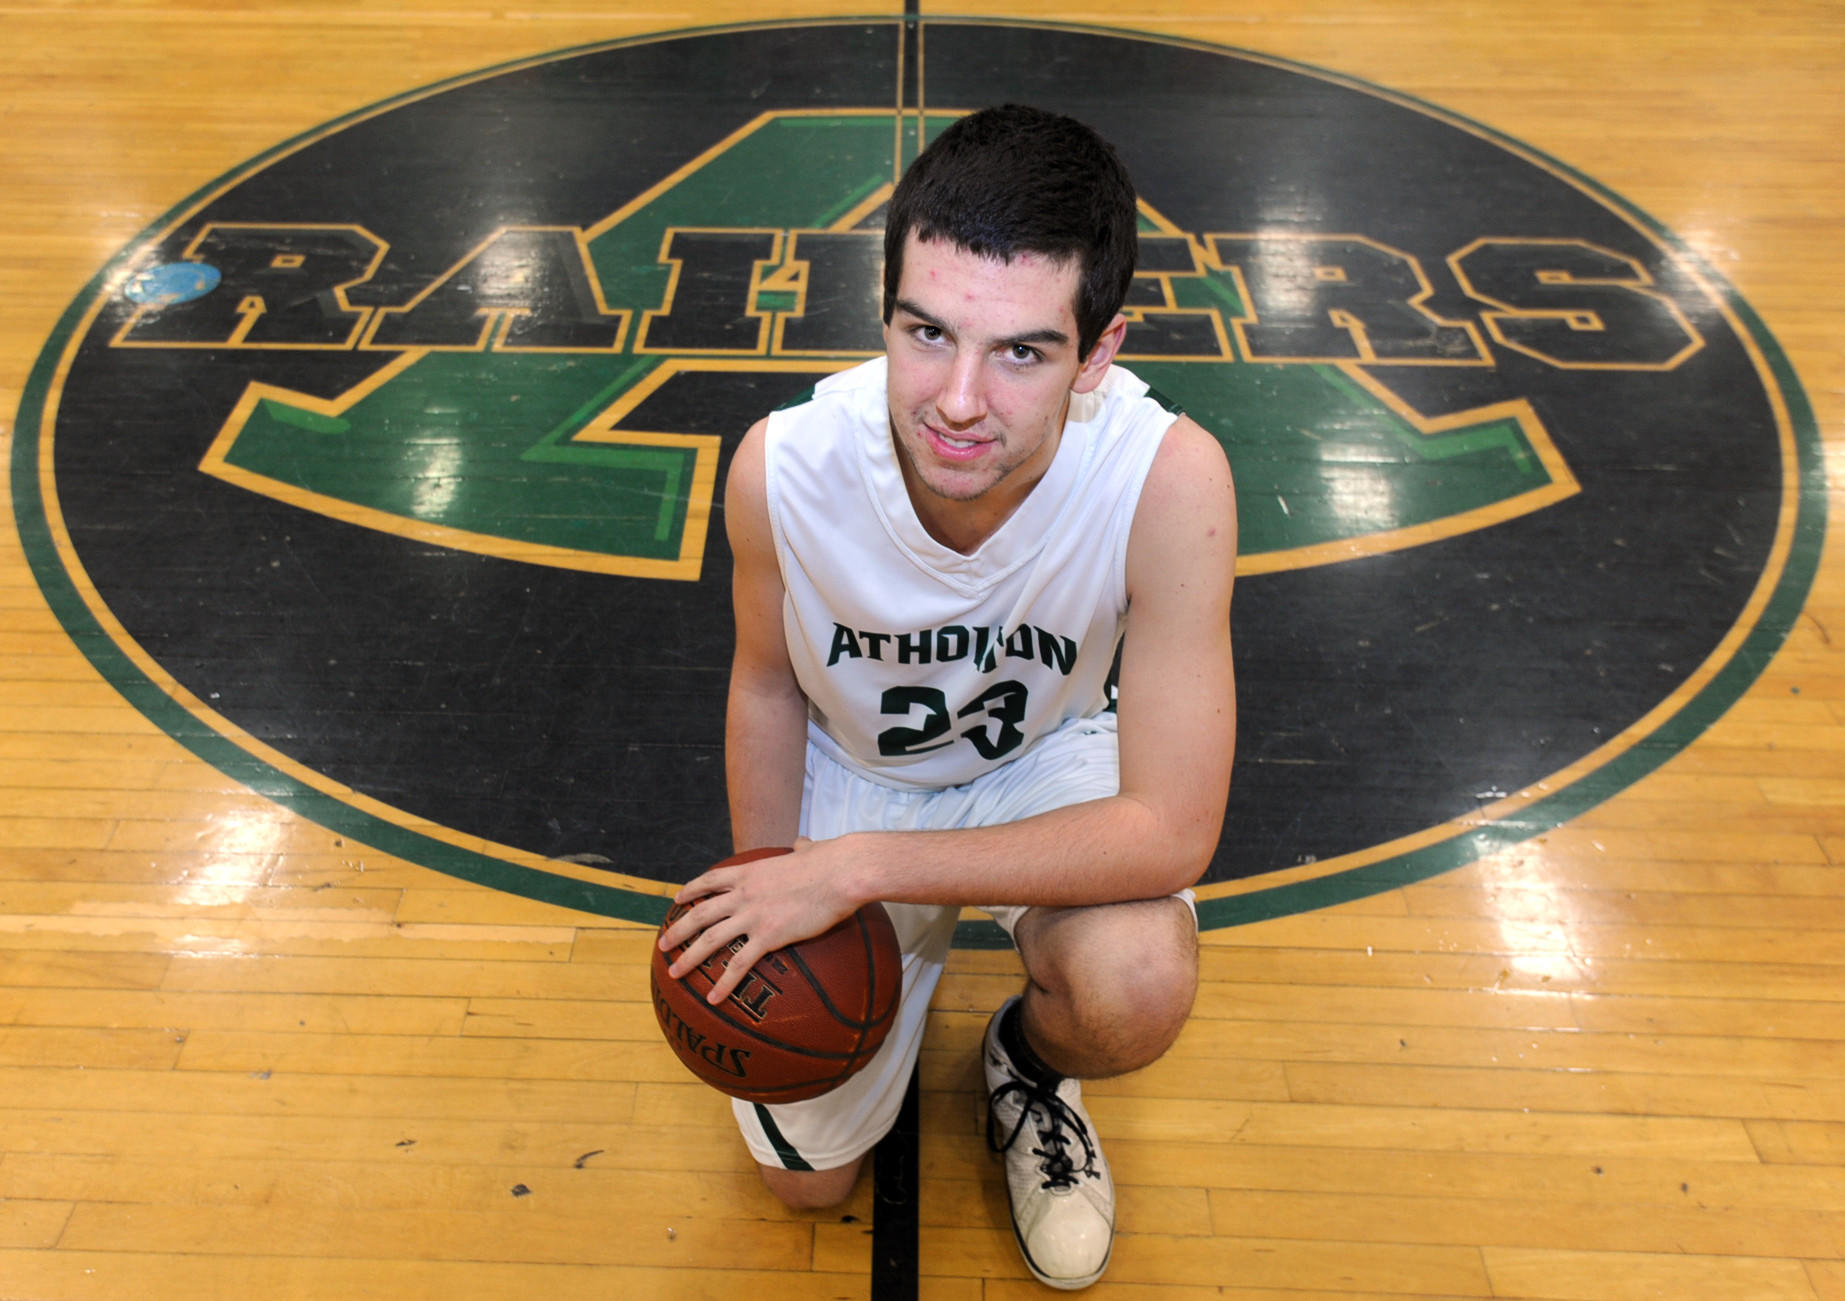 Michael Bernetti, basketball player for Atholton.